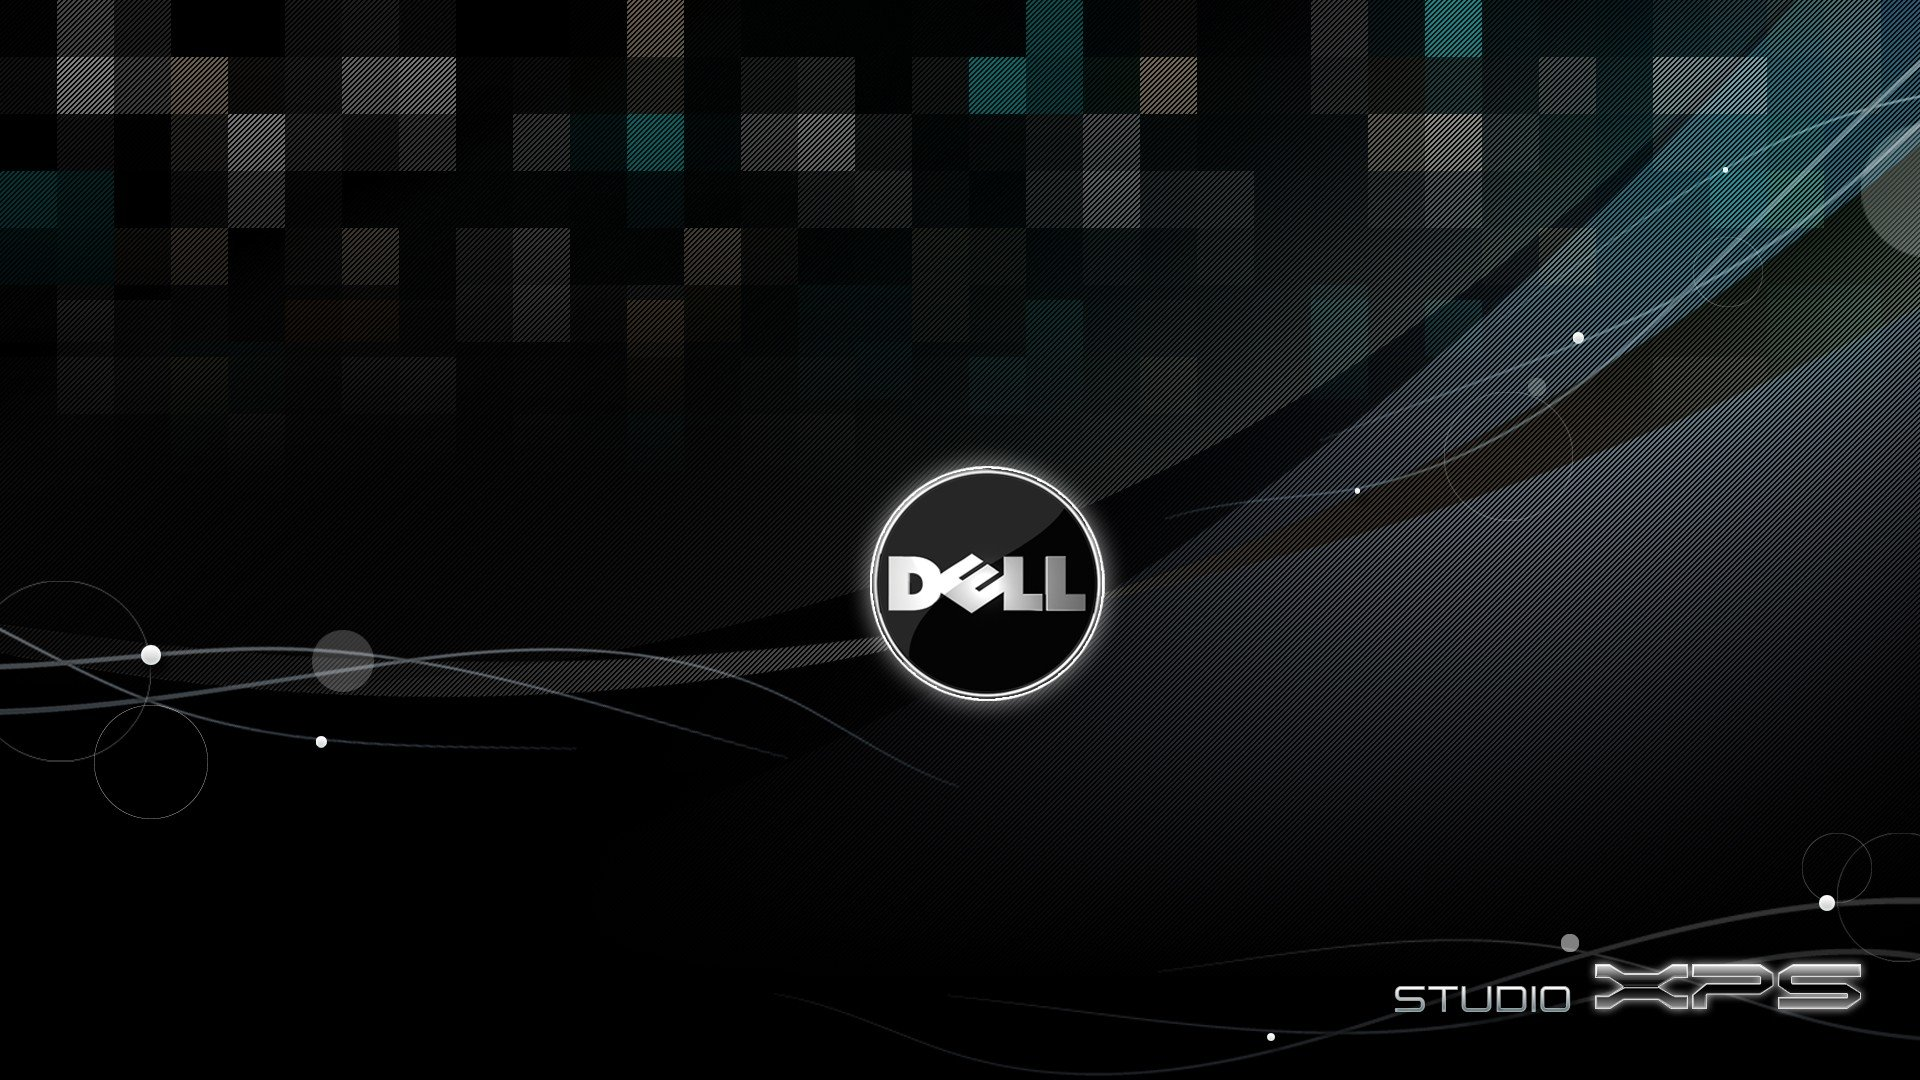 Dell Wallpaper Windows 10 72 Images: Dell, Computer, Hardware HD Wallpapers / Desktop And